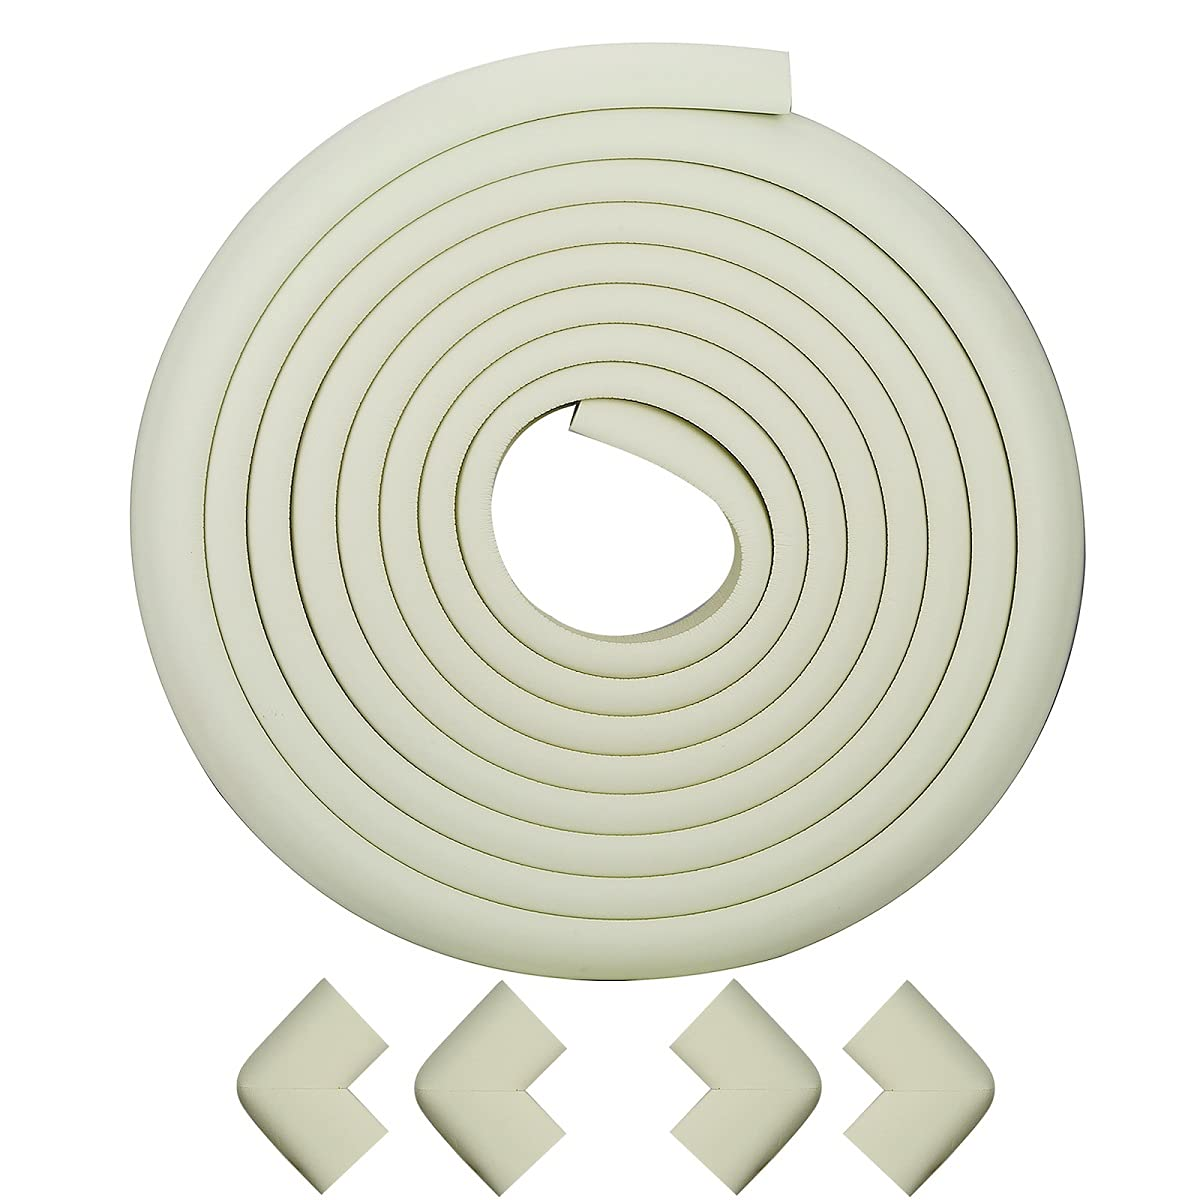 Suob Chicago Mall Baby Save money Proofing Edge and Set-16.2 ft Protector Guard Corner